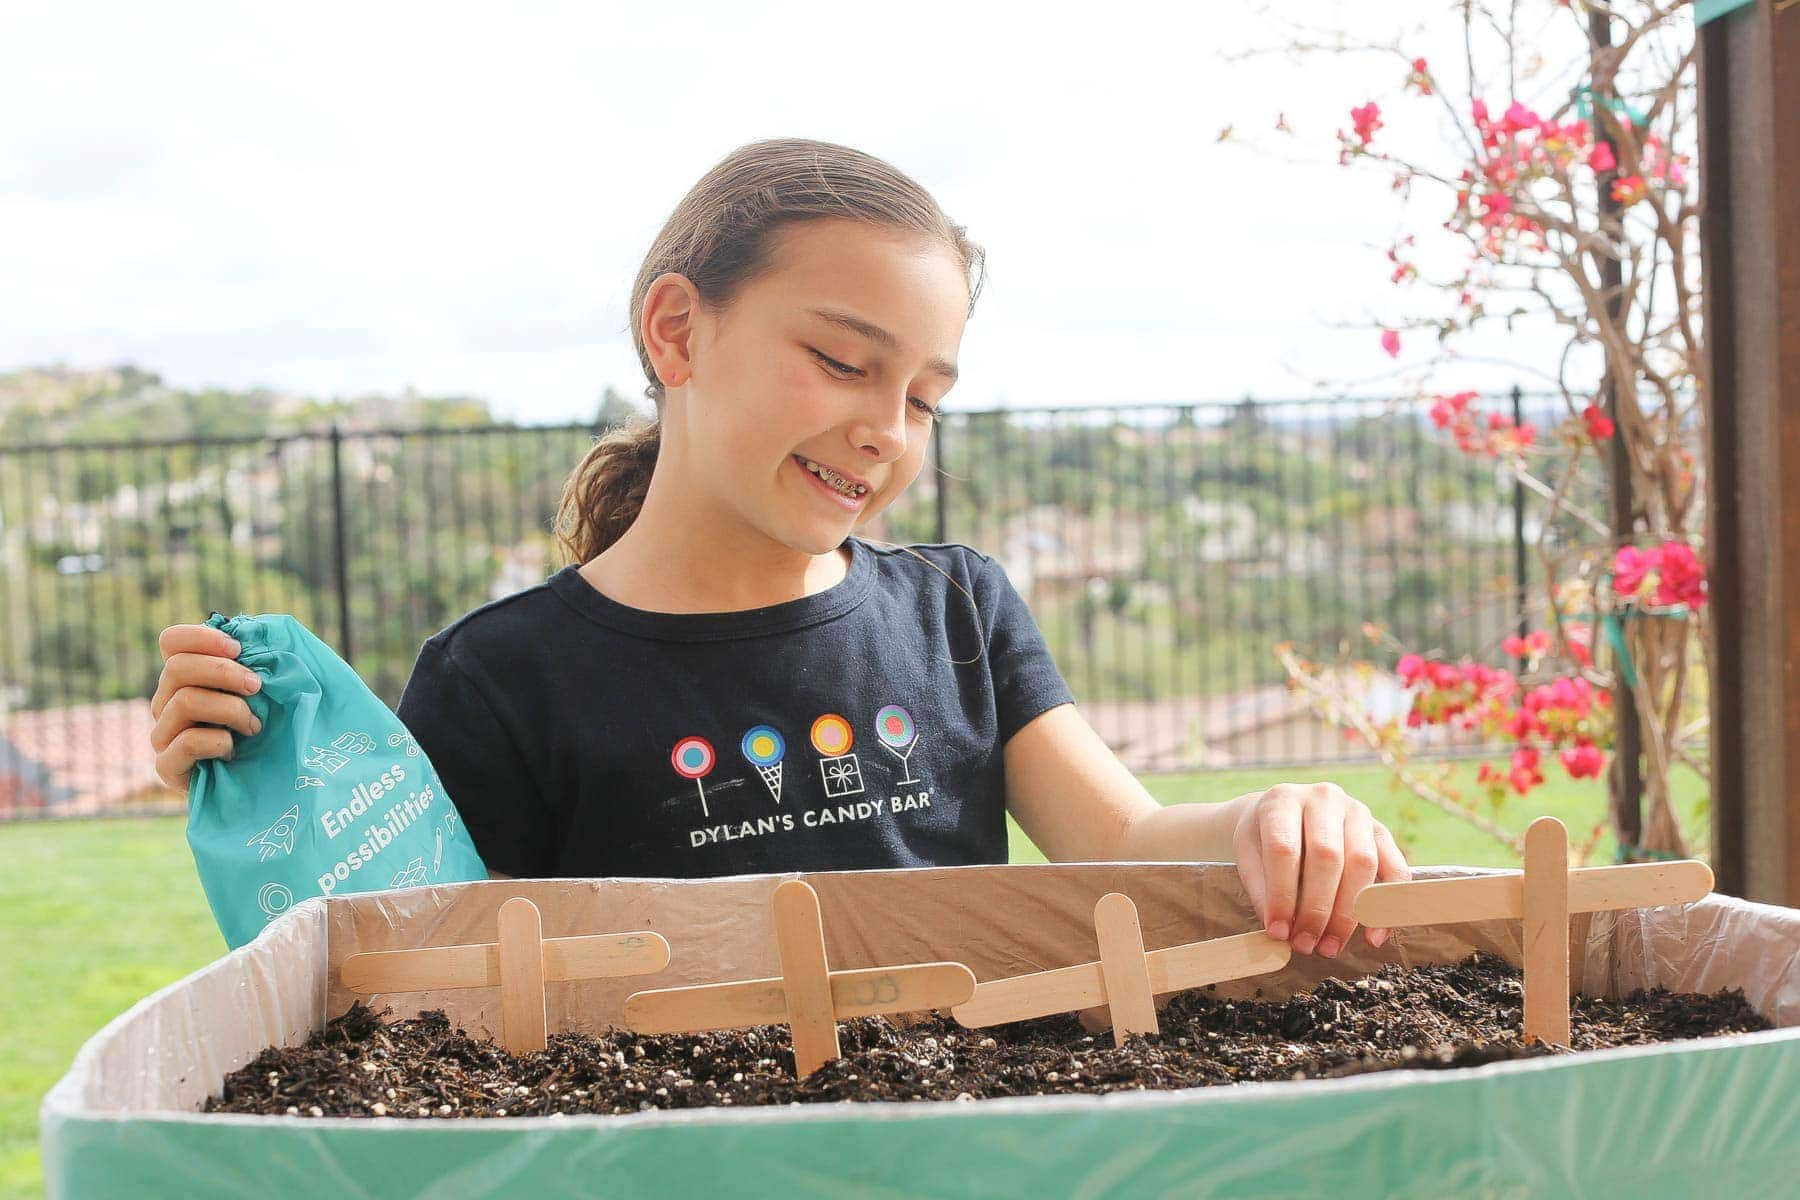 Girl arranging the labels on the Boxed mini garden